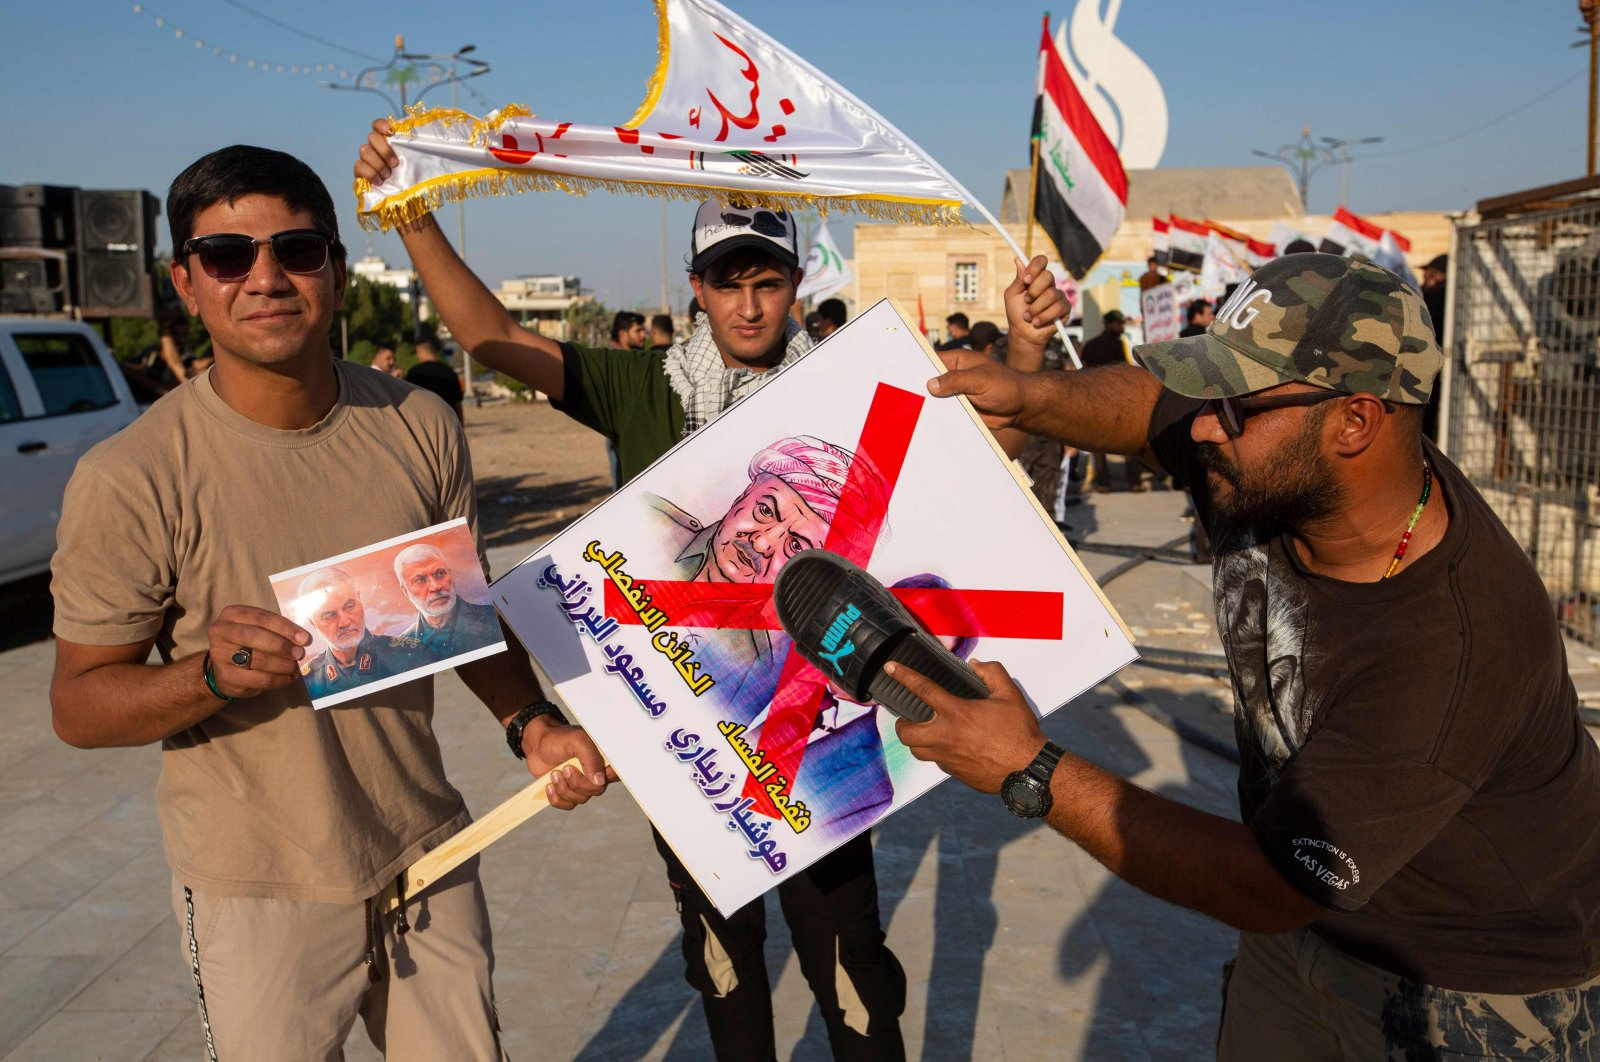 A supporter of Hashed al-Shaabi hits a poster bearing the portraits of Kurdish ex-minister Hoshyar Zebari and Kurdish leader Masoud Barzani with a slipper while a fellow protester carries the portraits of slain Iranian commander Qassem Soleimani and Iraqi paramilitary commander Abu Mahdi Al-Muhandis during a protest in support of the Hashed in the southern Iraqi city of Basra on October 17, 2020. (AFP Photo)